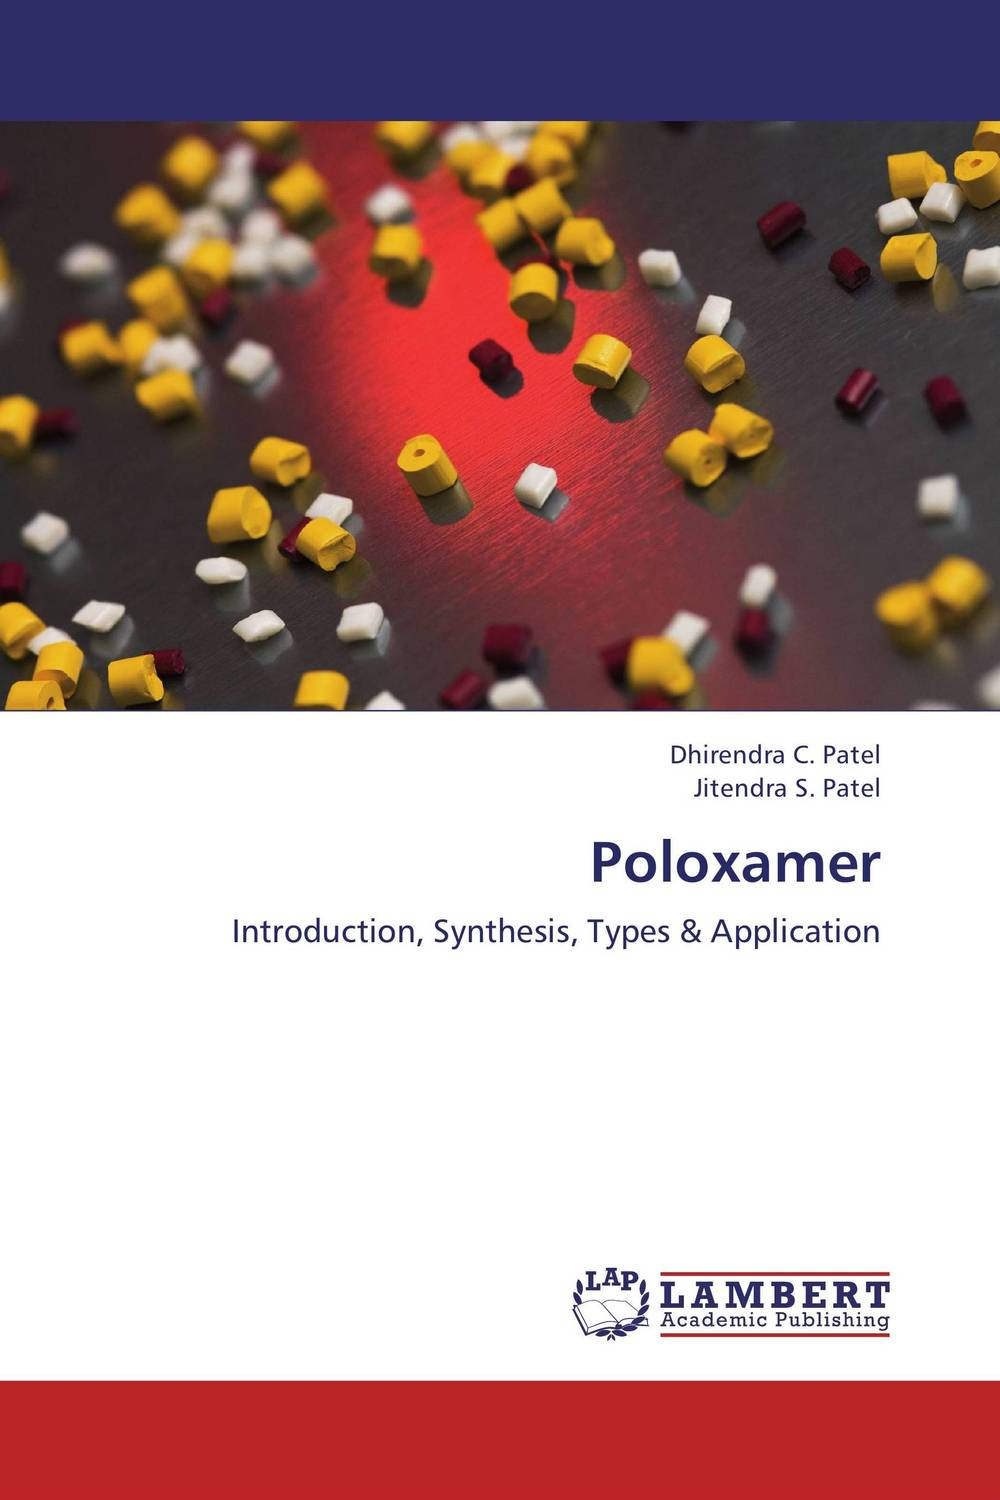 Poloxamer fda 489 replaceable core filter driers are designed to be used in the liquid and suction lines of air conditioning systems